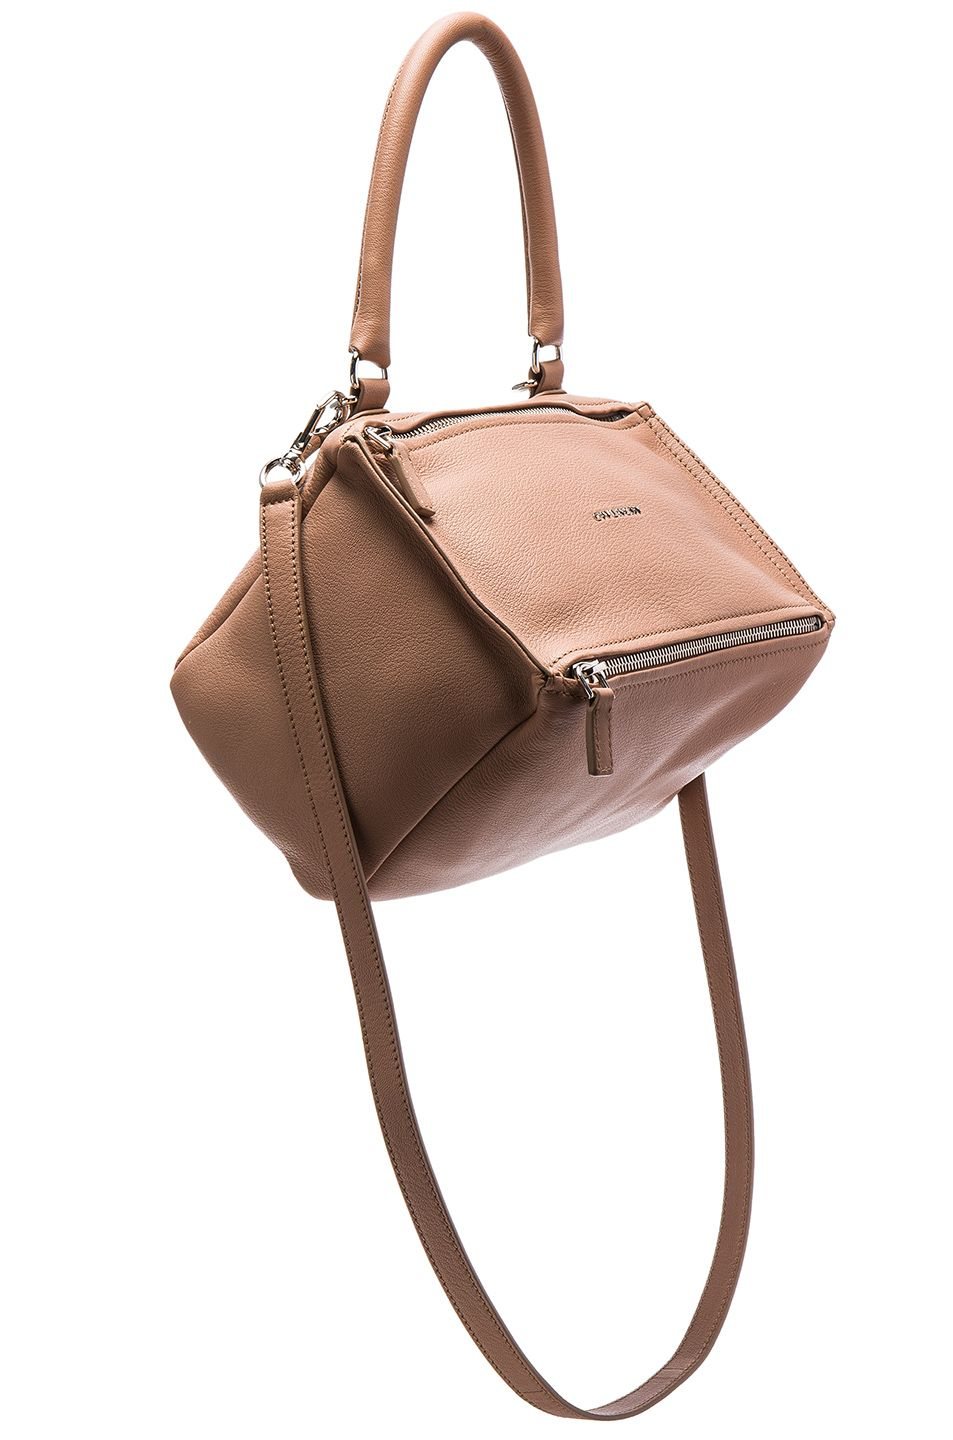 bf85ead552 GIVENCHY Pandora Small Bag.  givenchy  bags  shoulder bags  hand bags   canvas  leather  lining